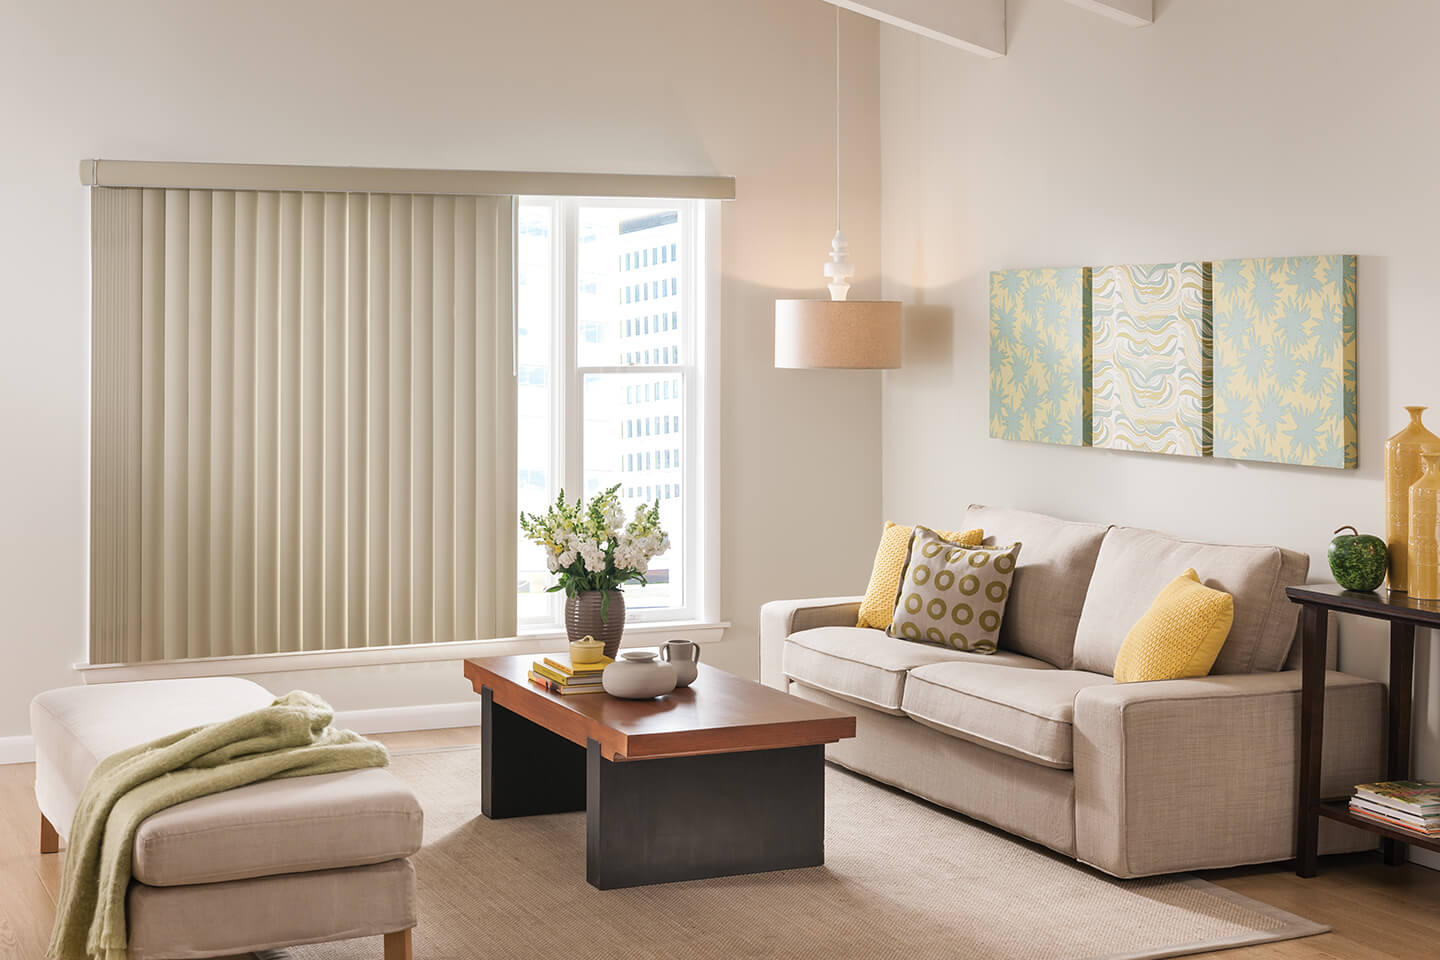 Value Vertical Blinds Bali Blinds And Shades